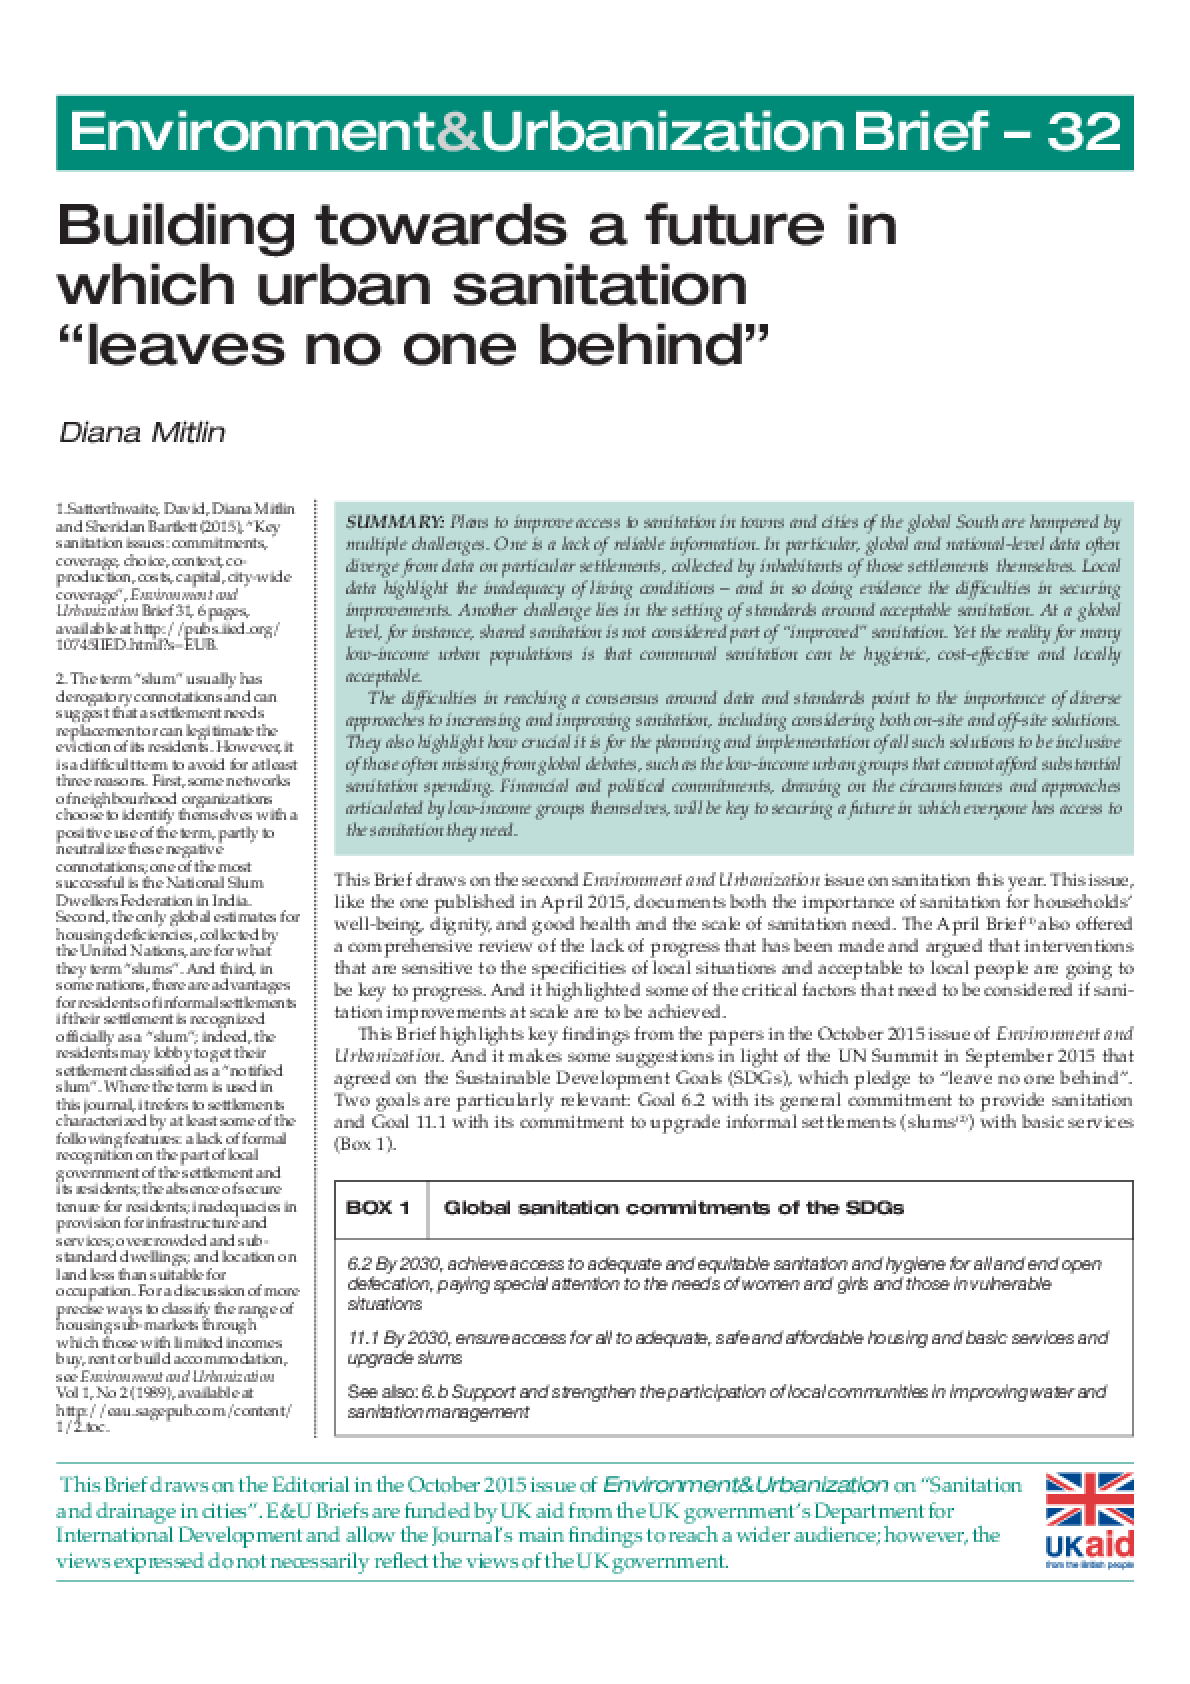 Building Towards a Future in Which Urban Sanitation Leaves No One Behind